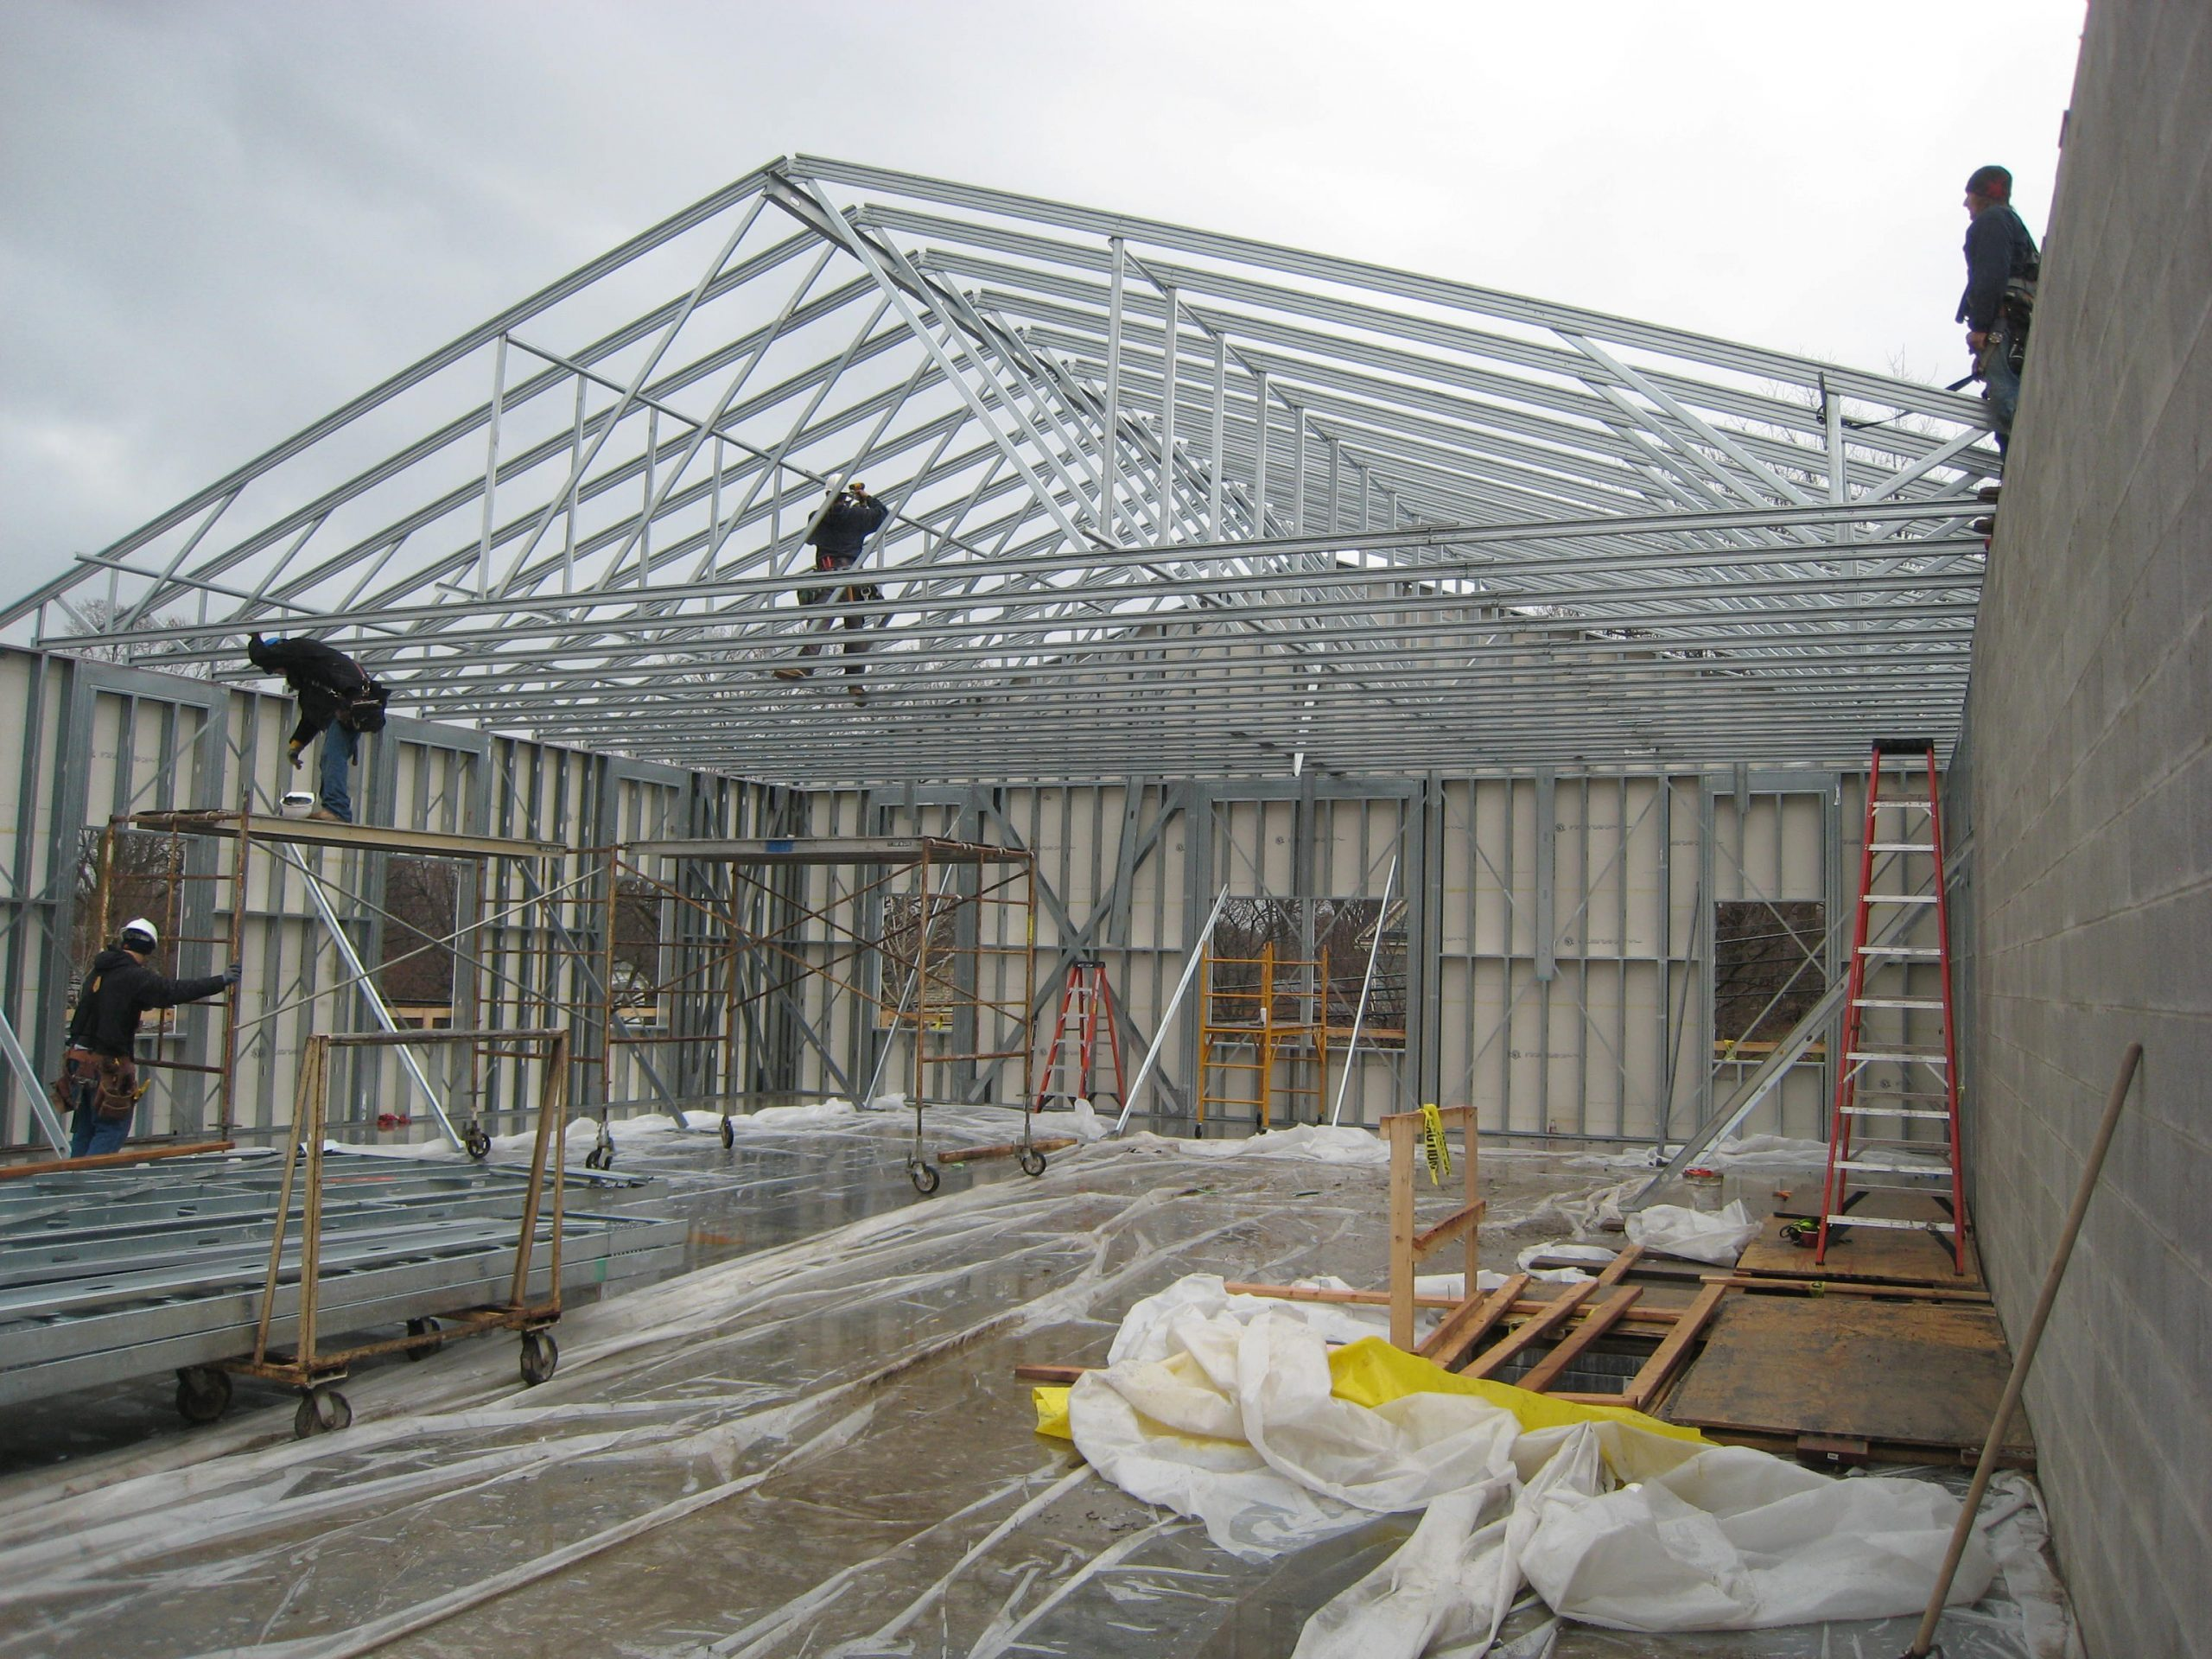 light gauge steel trusses and architectural framing being assembled by a construction crew